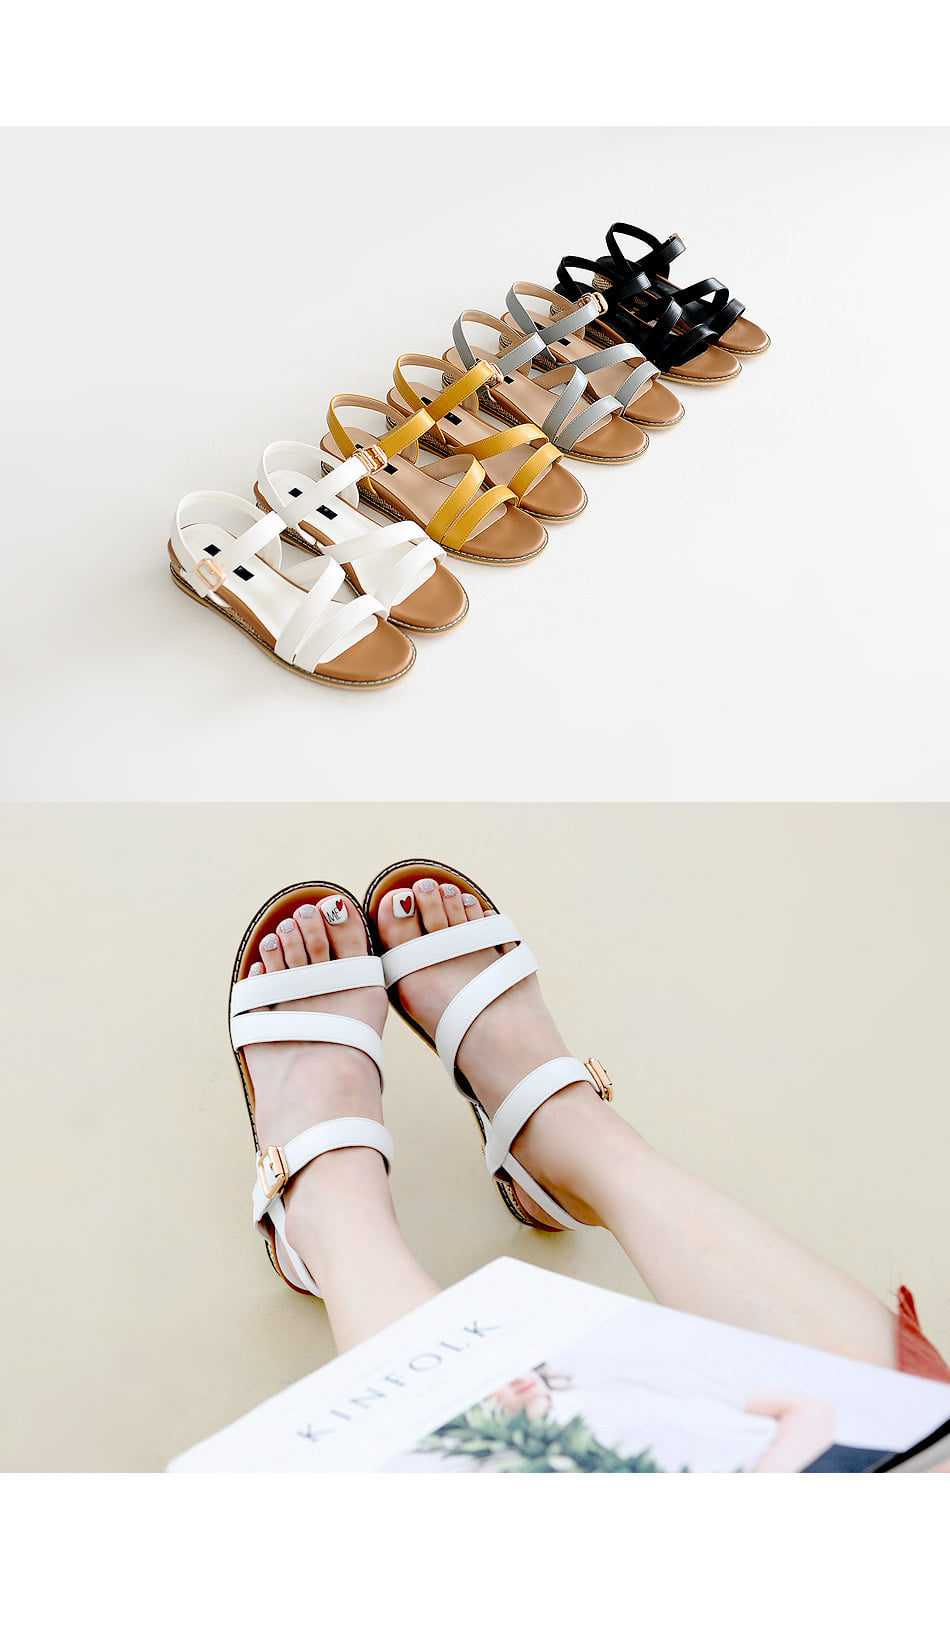 Derien Wedge Slingback Sandals 3cm